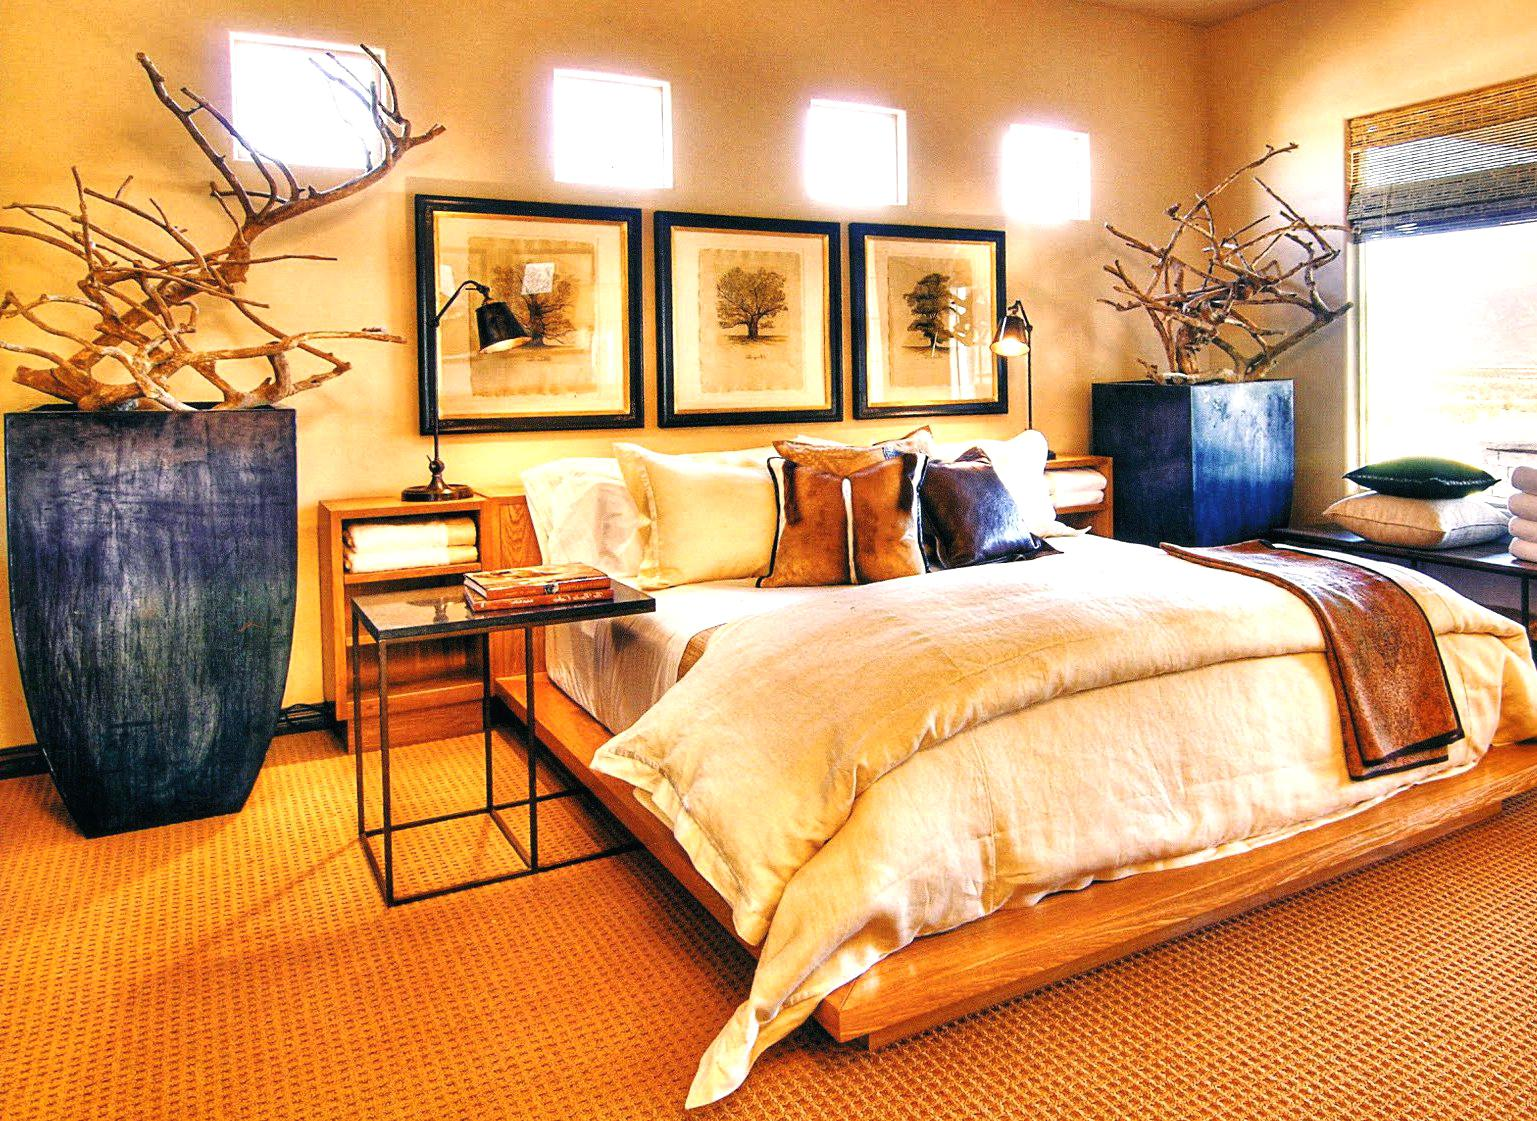 Safari Room Decorating Ideas